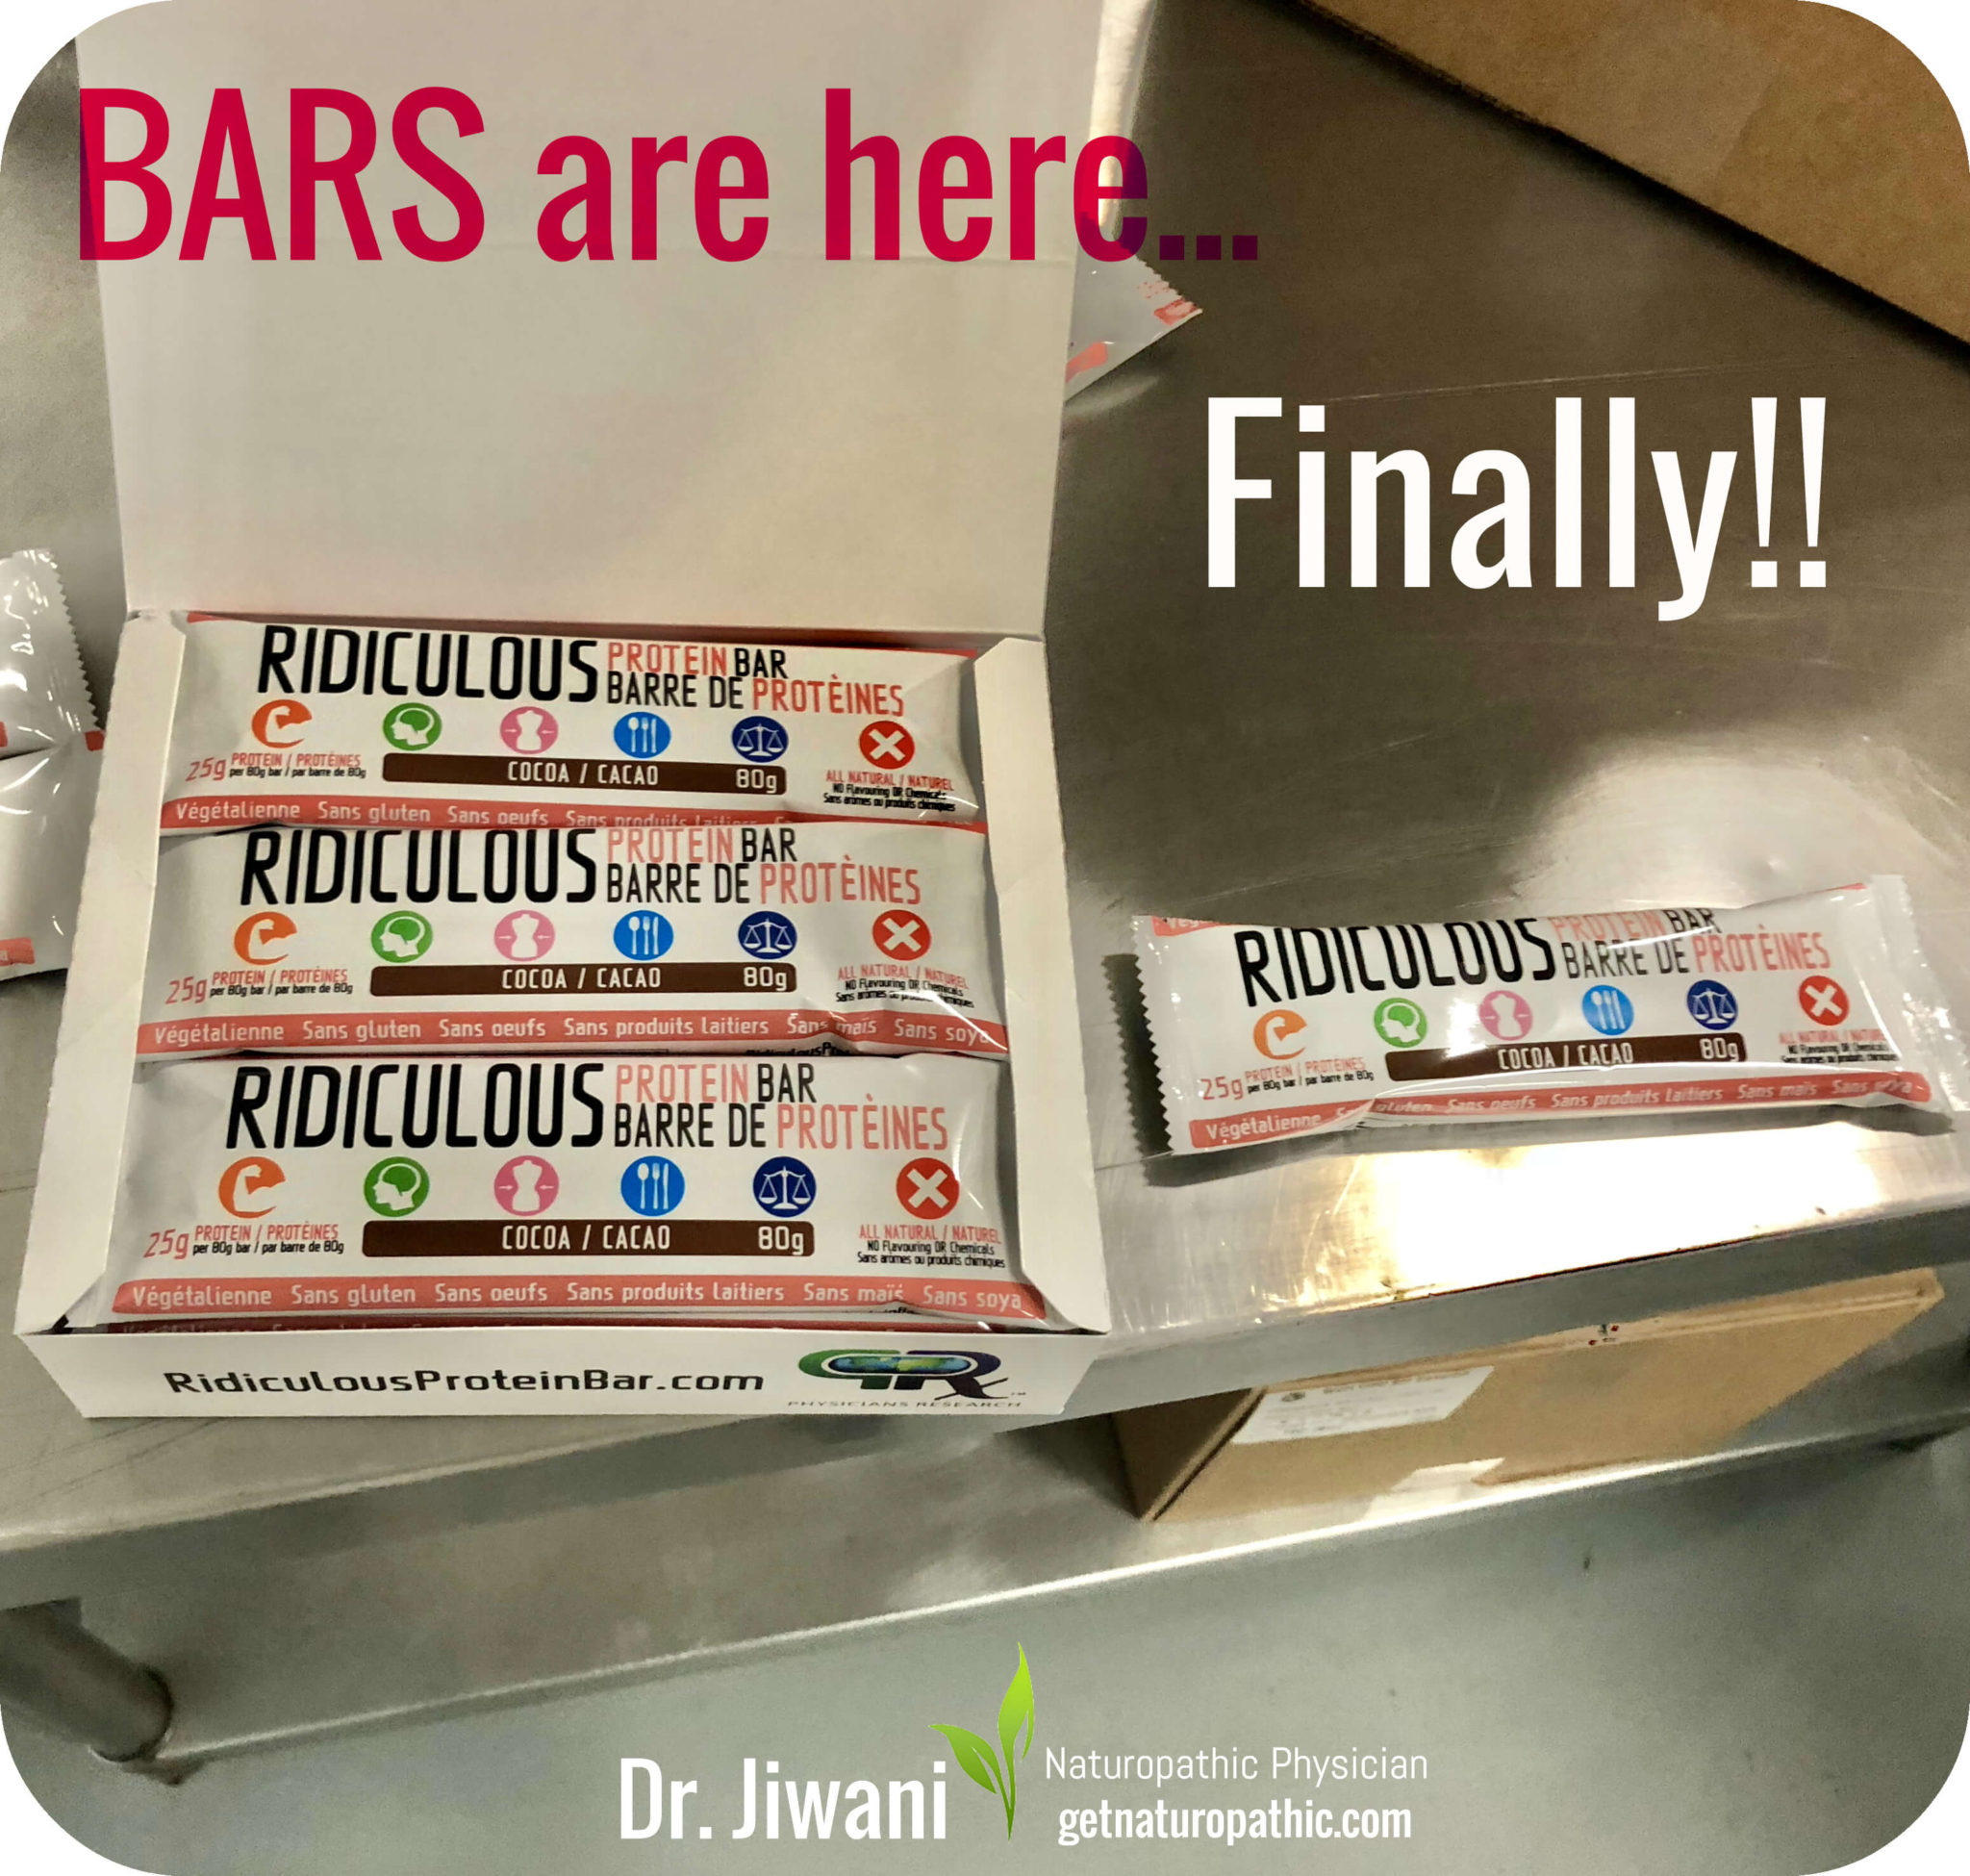 Dr. Jiwani Ridiculous Protein Bar Vegan Low Carb** | Dr. Jiwani's Naturopathic Nuggets Blog